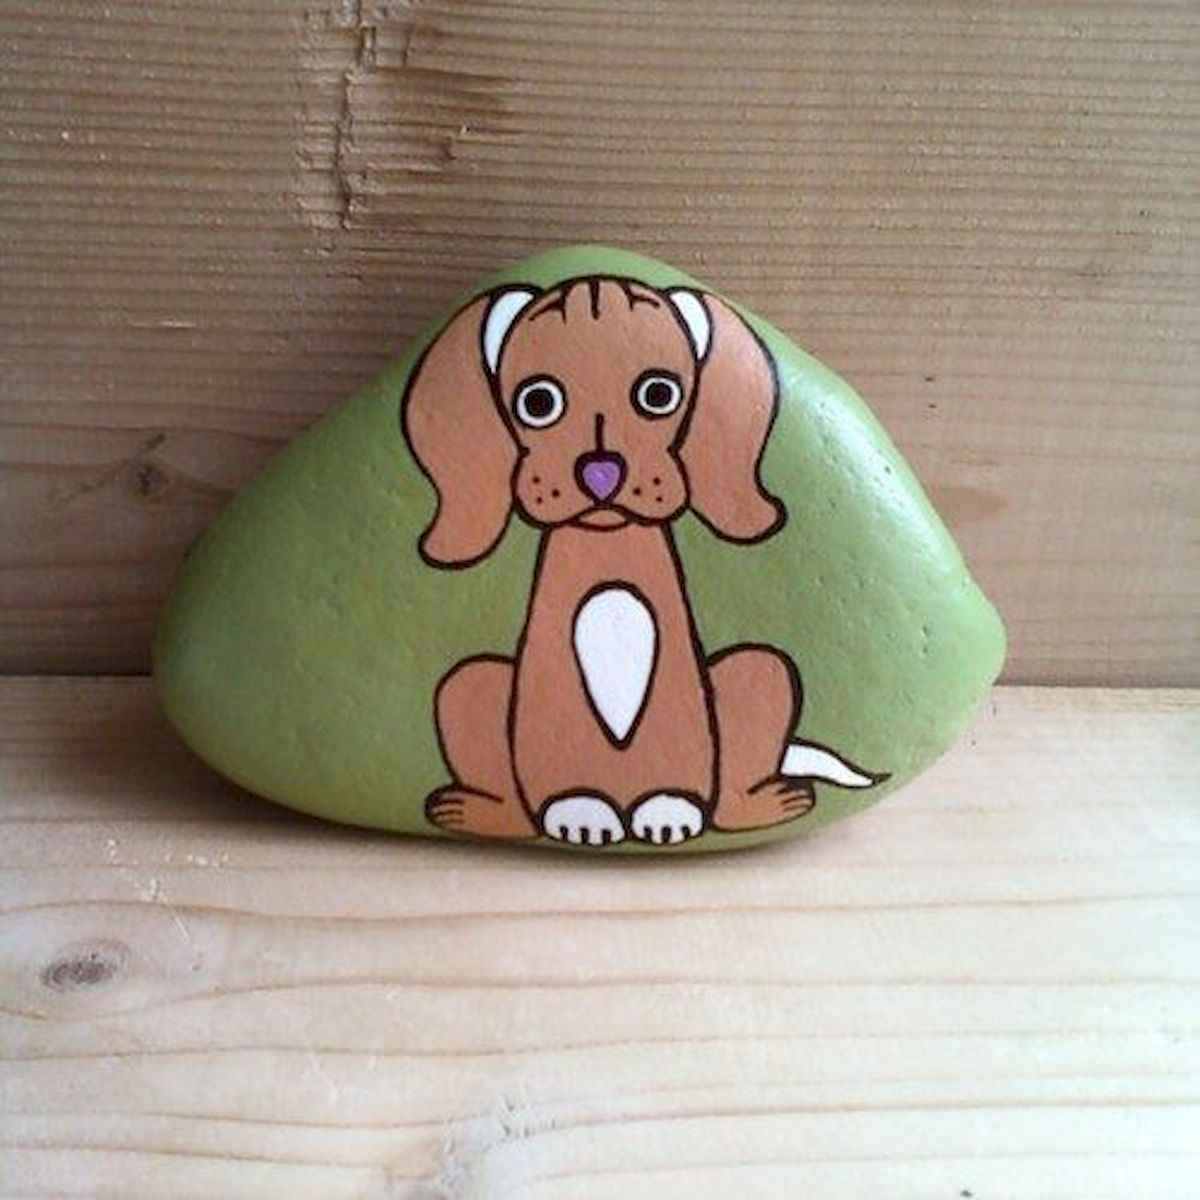 40 Awesome DIY Projects Painted Rocks Animals Dogs for Summer Ideas (7)